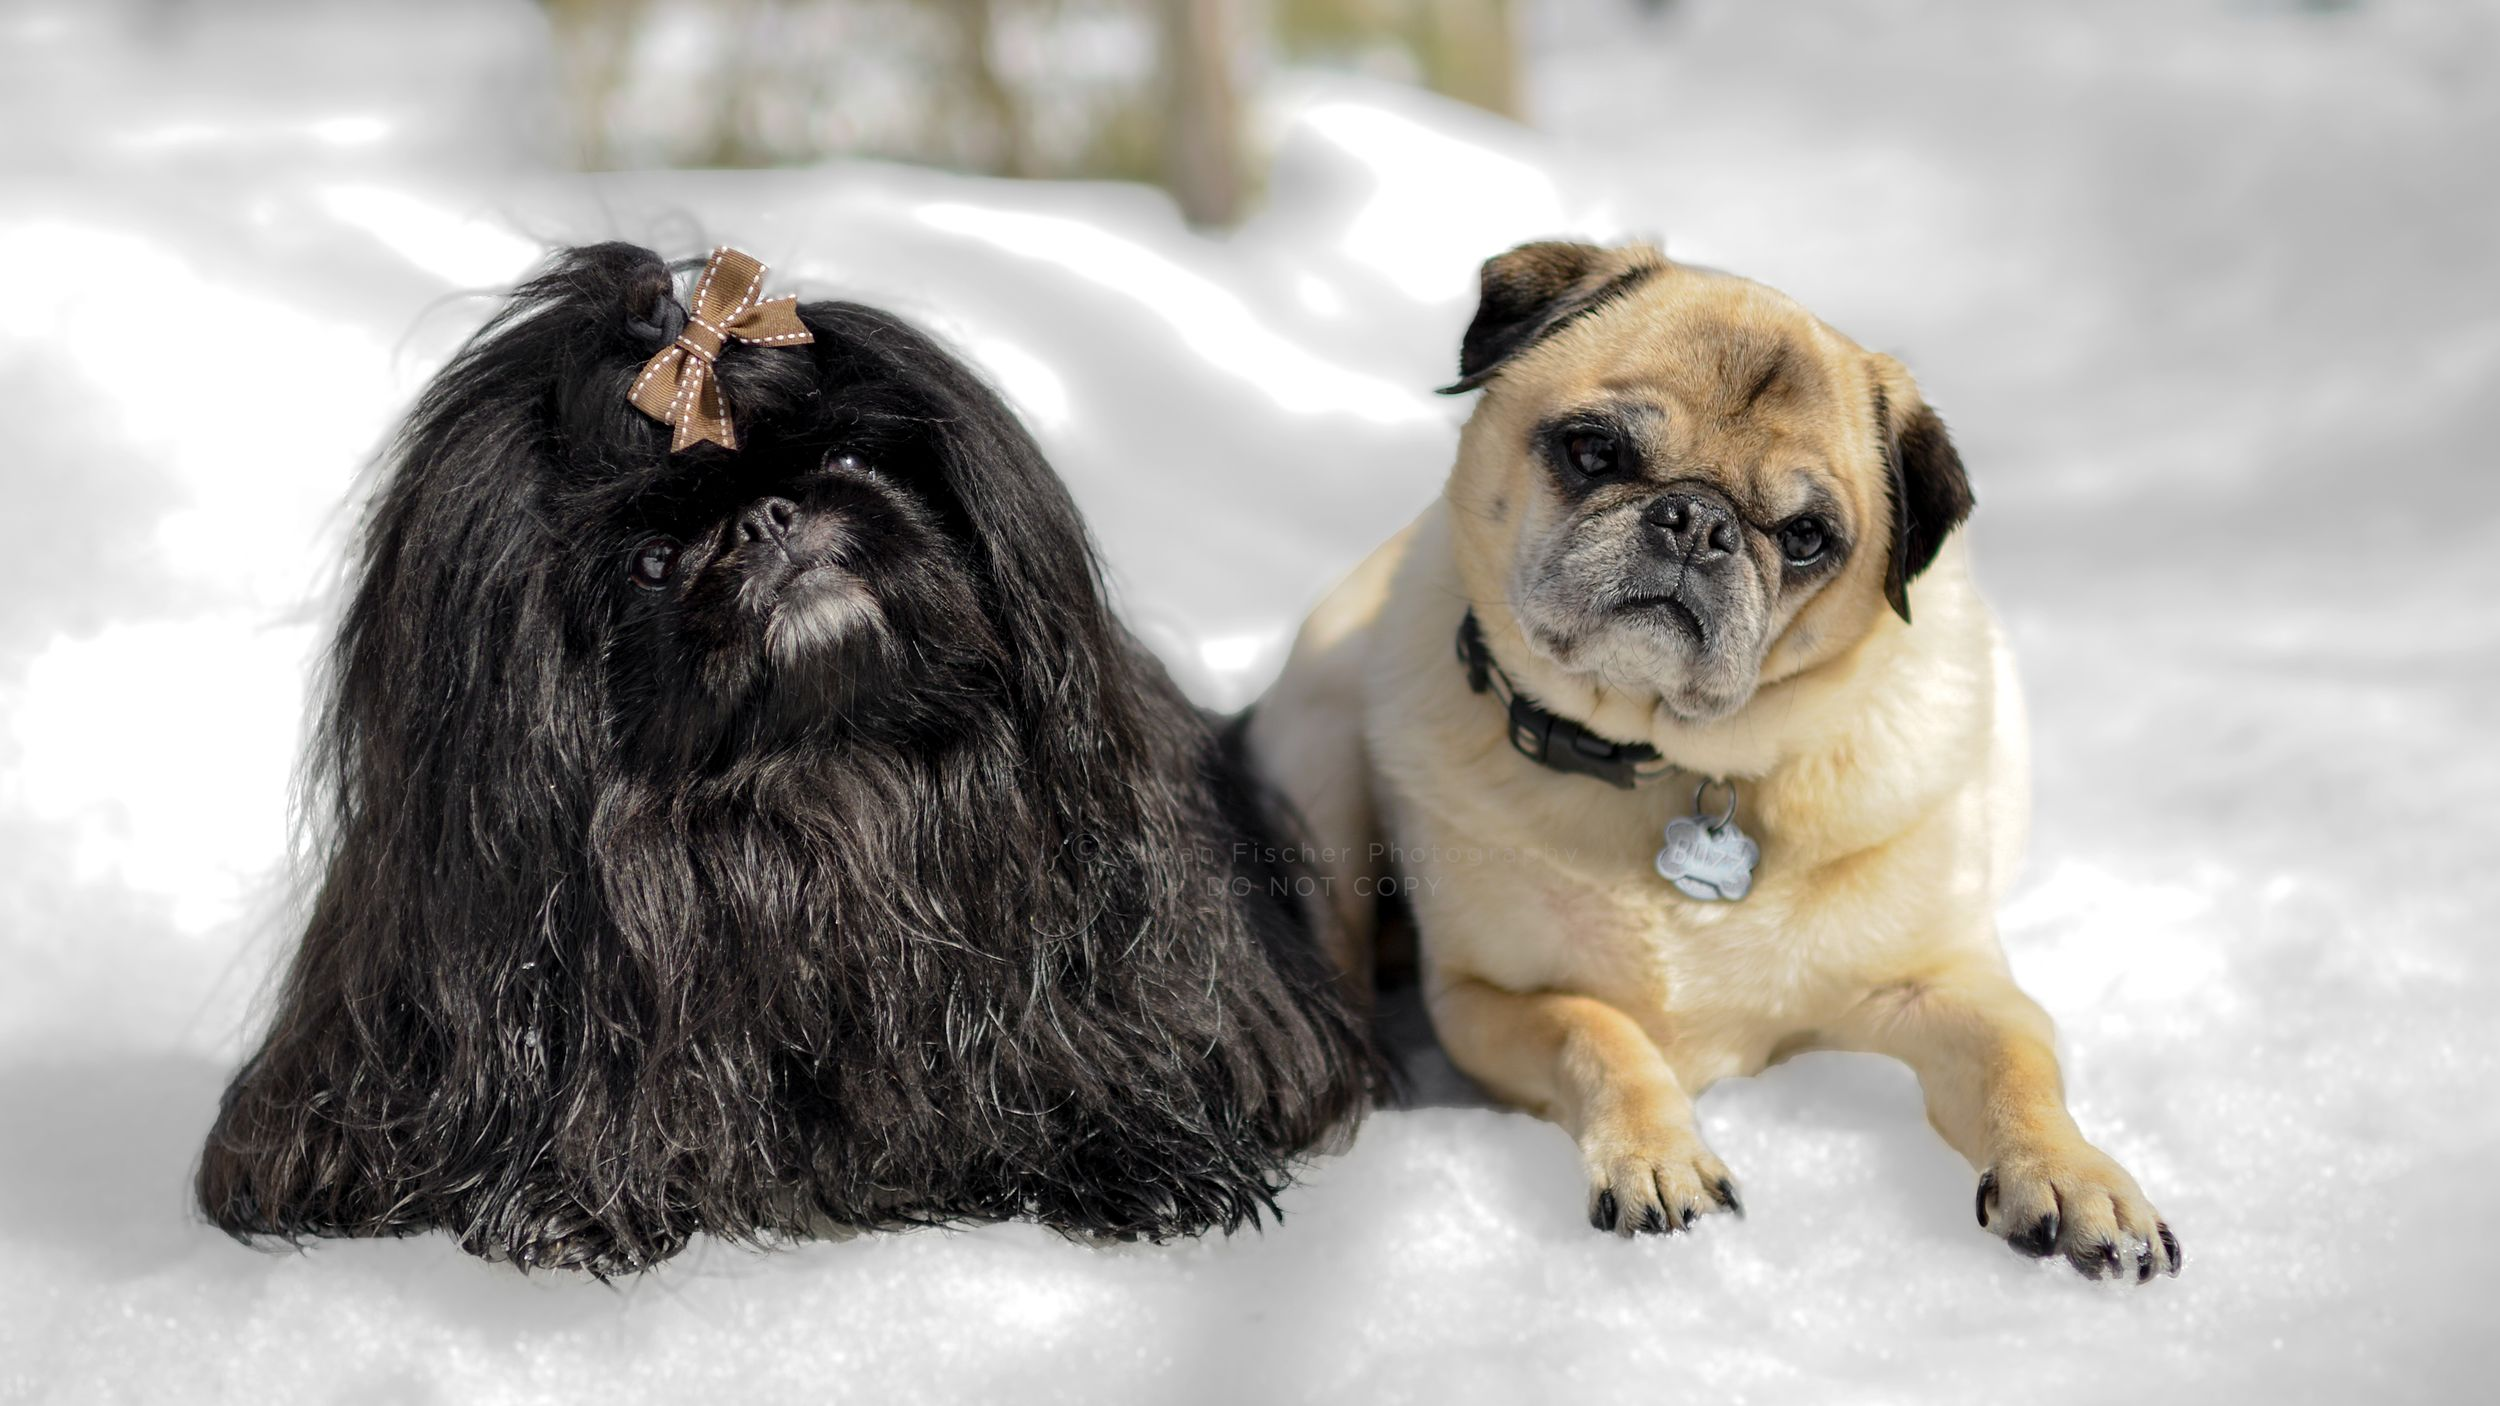 A black Pomeranian and fawn Pug lying together in the snow